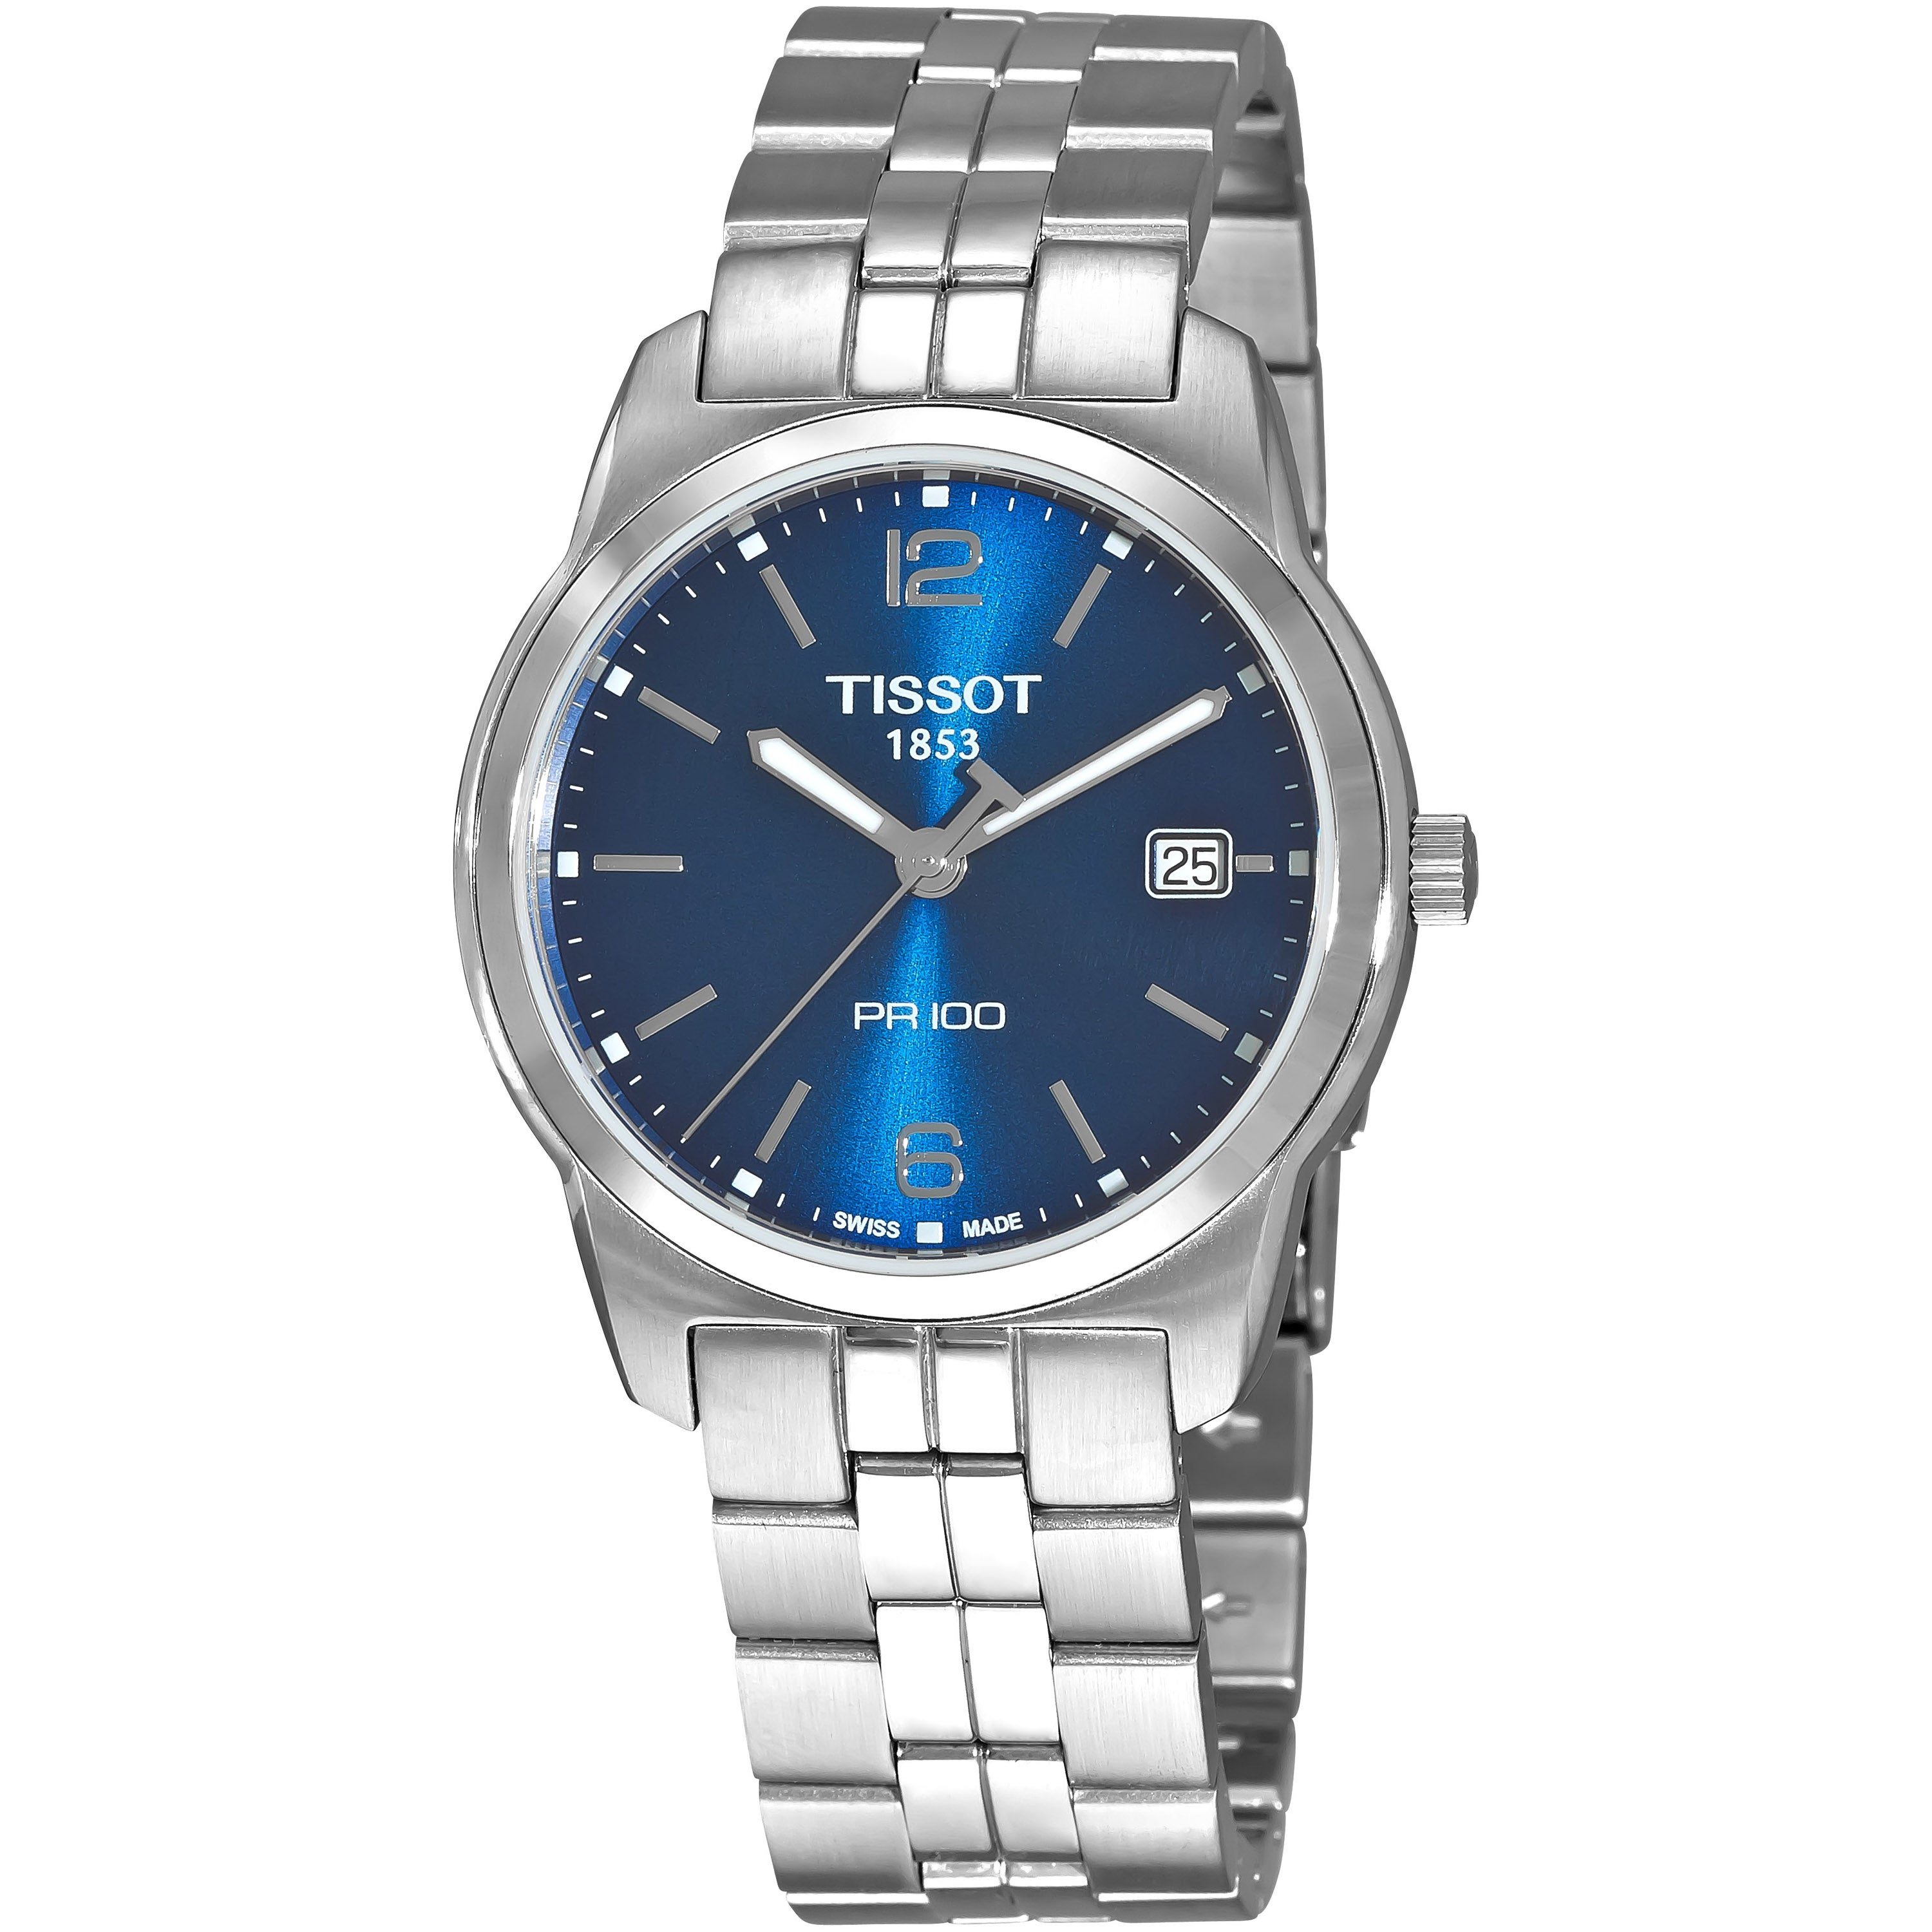 Tissot Men's 'PR 100' Blue Dial Stainless Steel Quartz Wa...